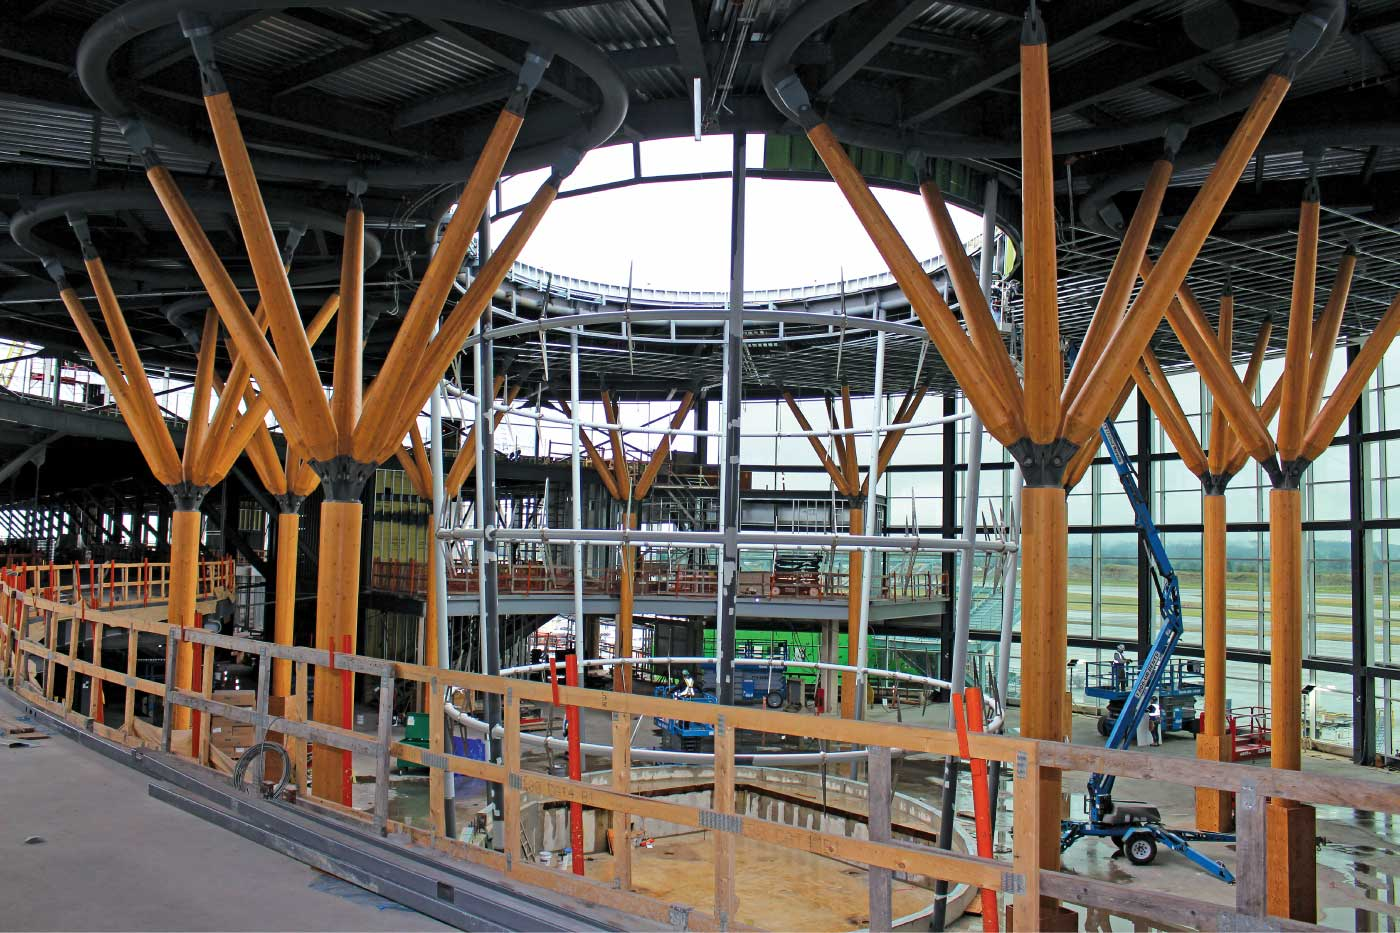 YVR Pier D Expansion during construction